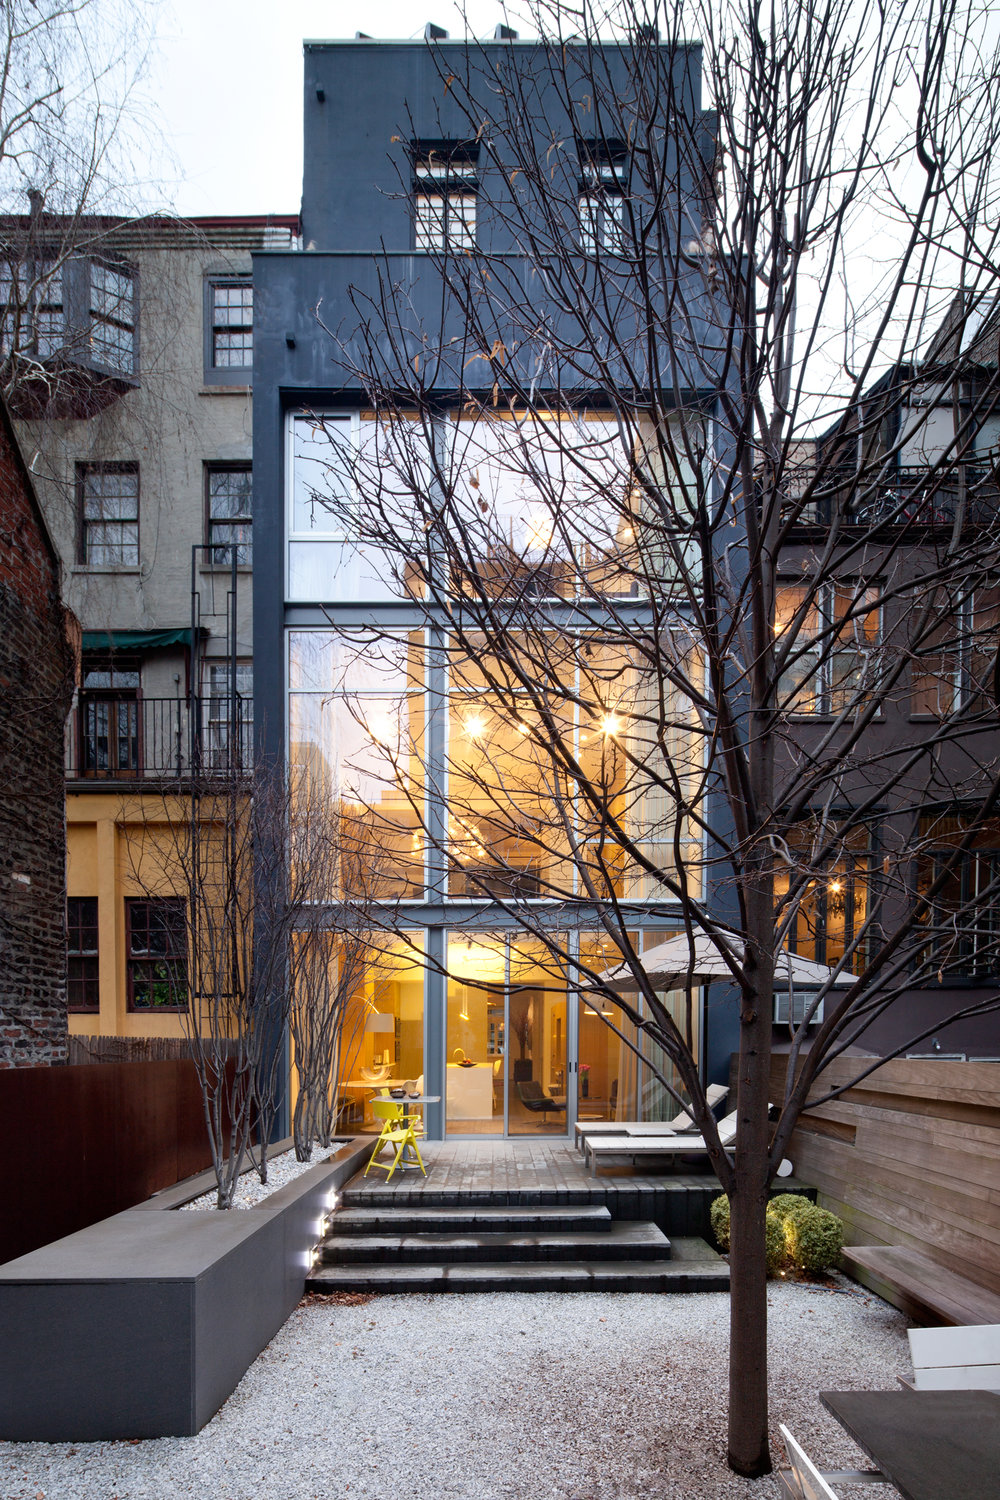 Private Residence  West Village, NYC  Robert Wilkanowski   Back to Portfolios